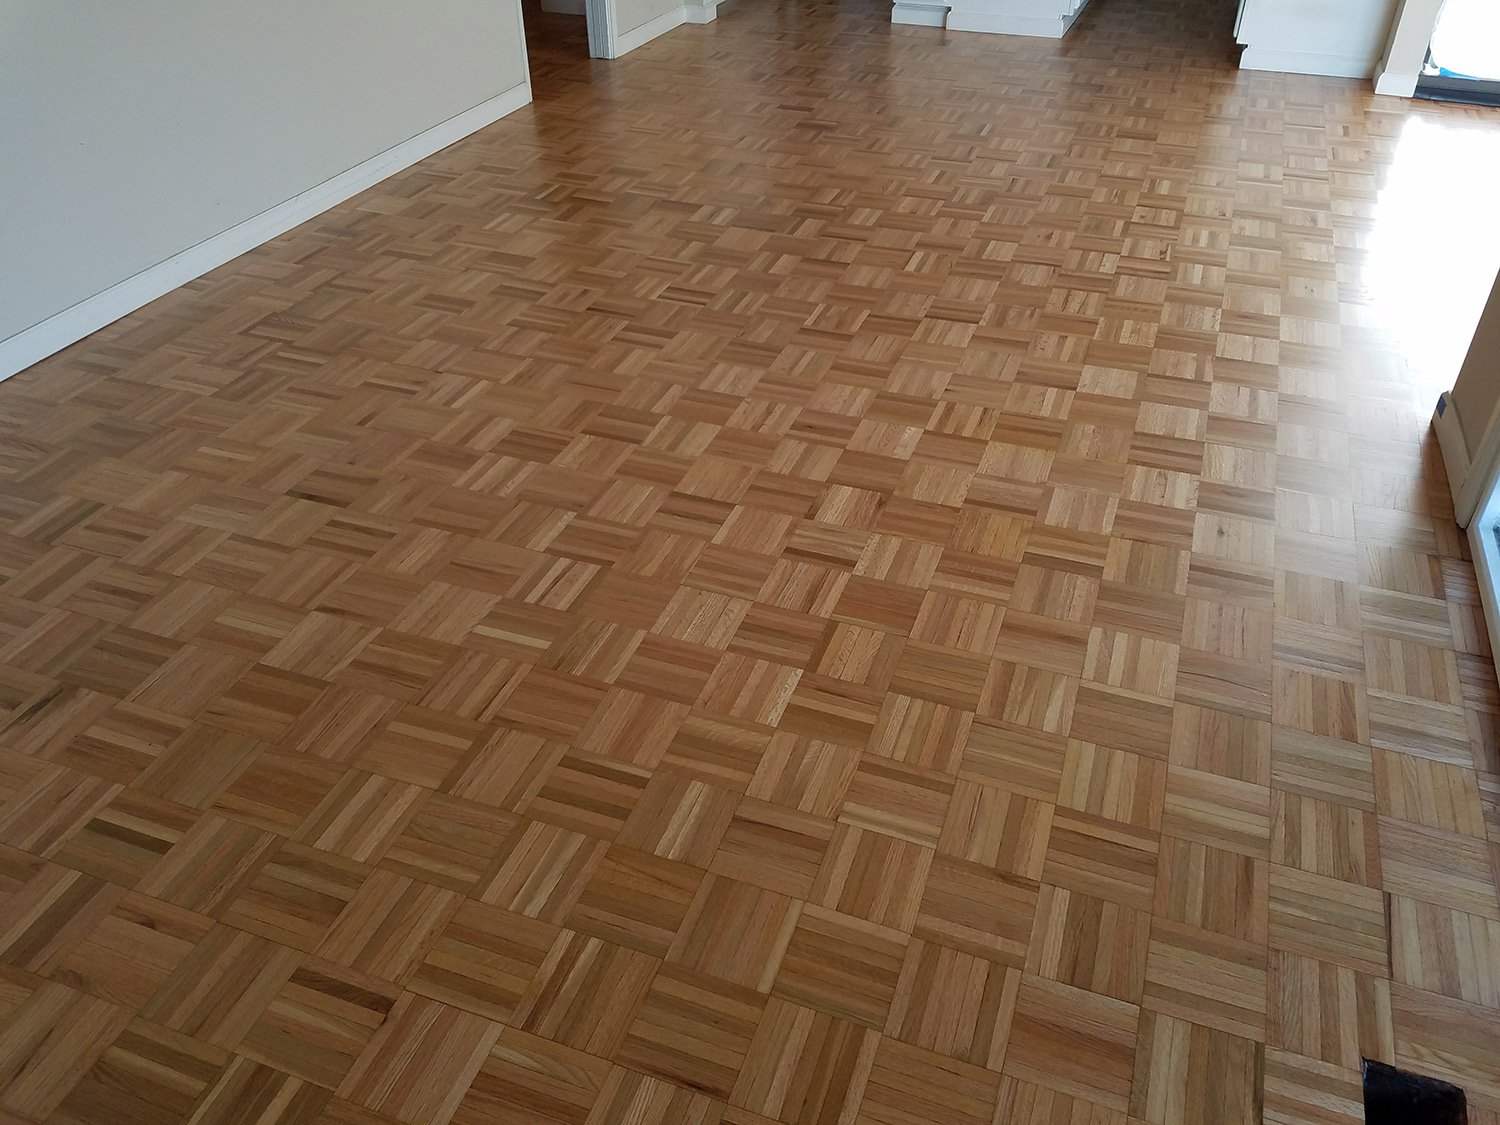 Gallery avi s hardwood floors inc for Hardwood flooring inc